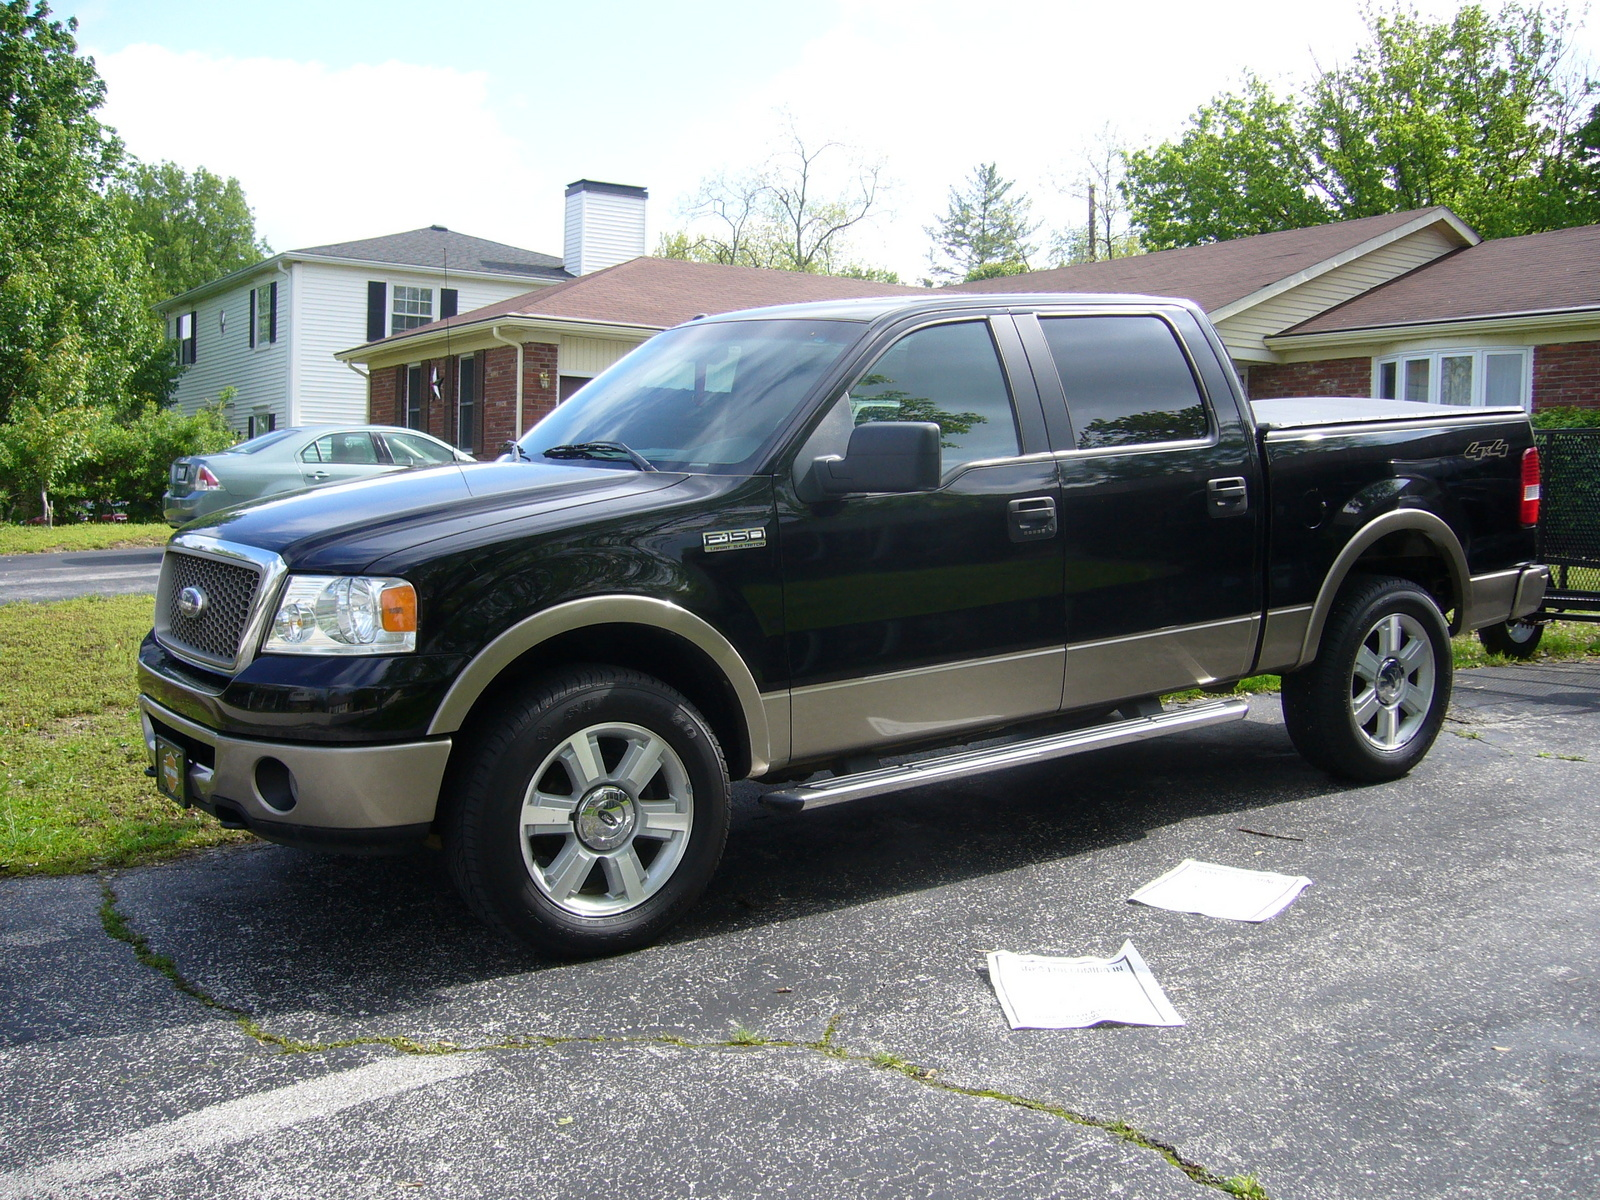 hight resolution of ford f 150 questions temp inside of cab takes a long time to get ford f 150 fuel filter replacement 2000 jeep grand cherokee ac diagram